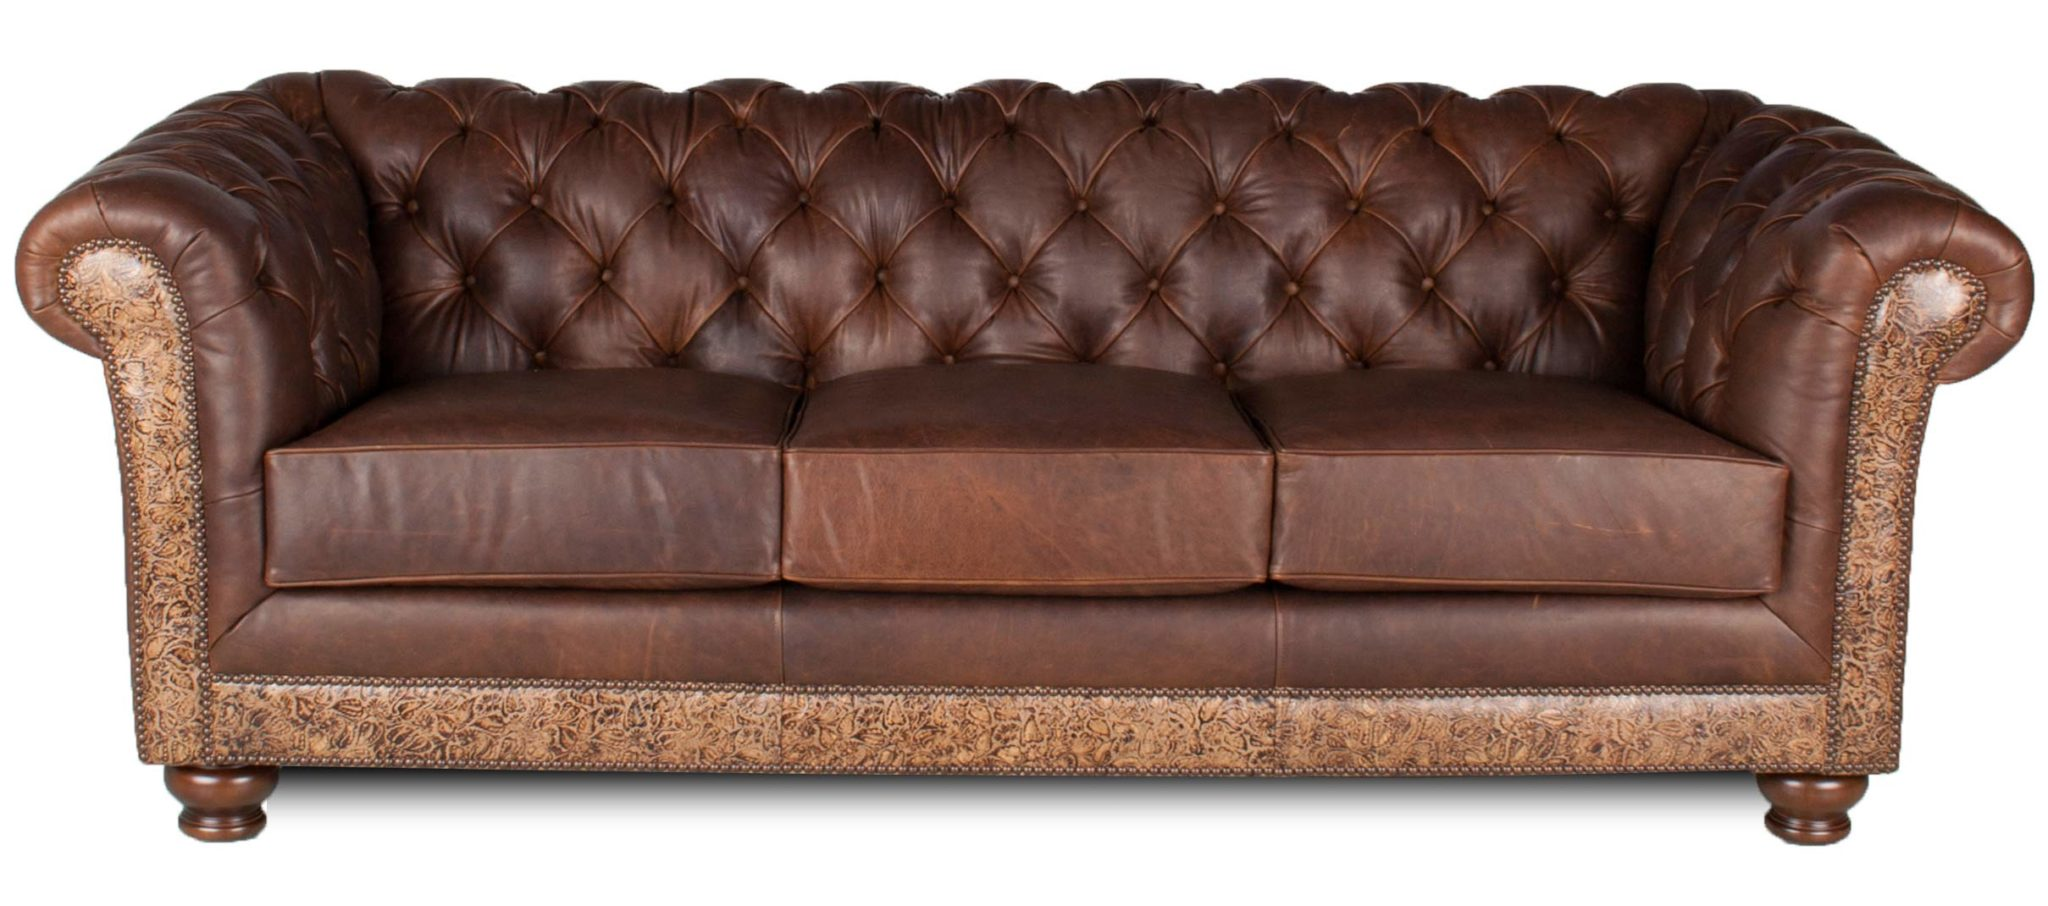 Corinthian Leather Sofa Corinthian Leather Sofa And Loveseat Thesofa